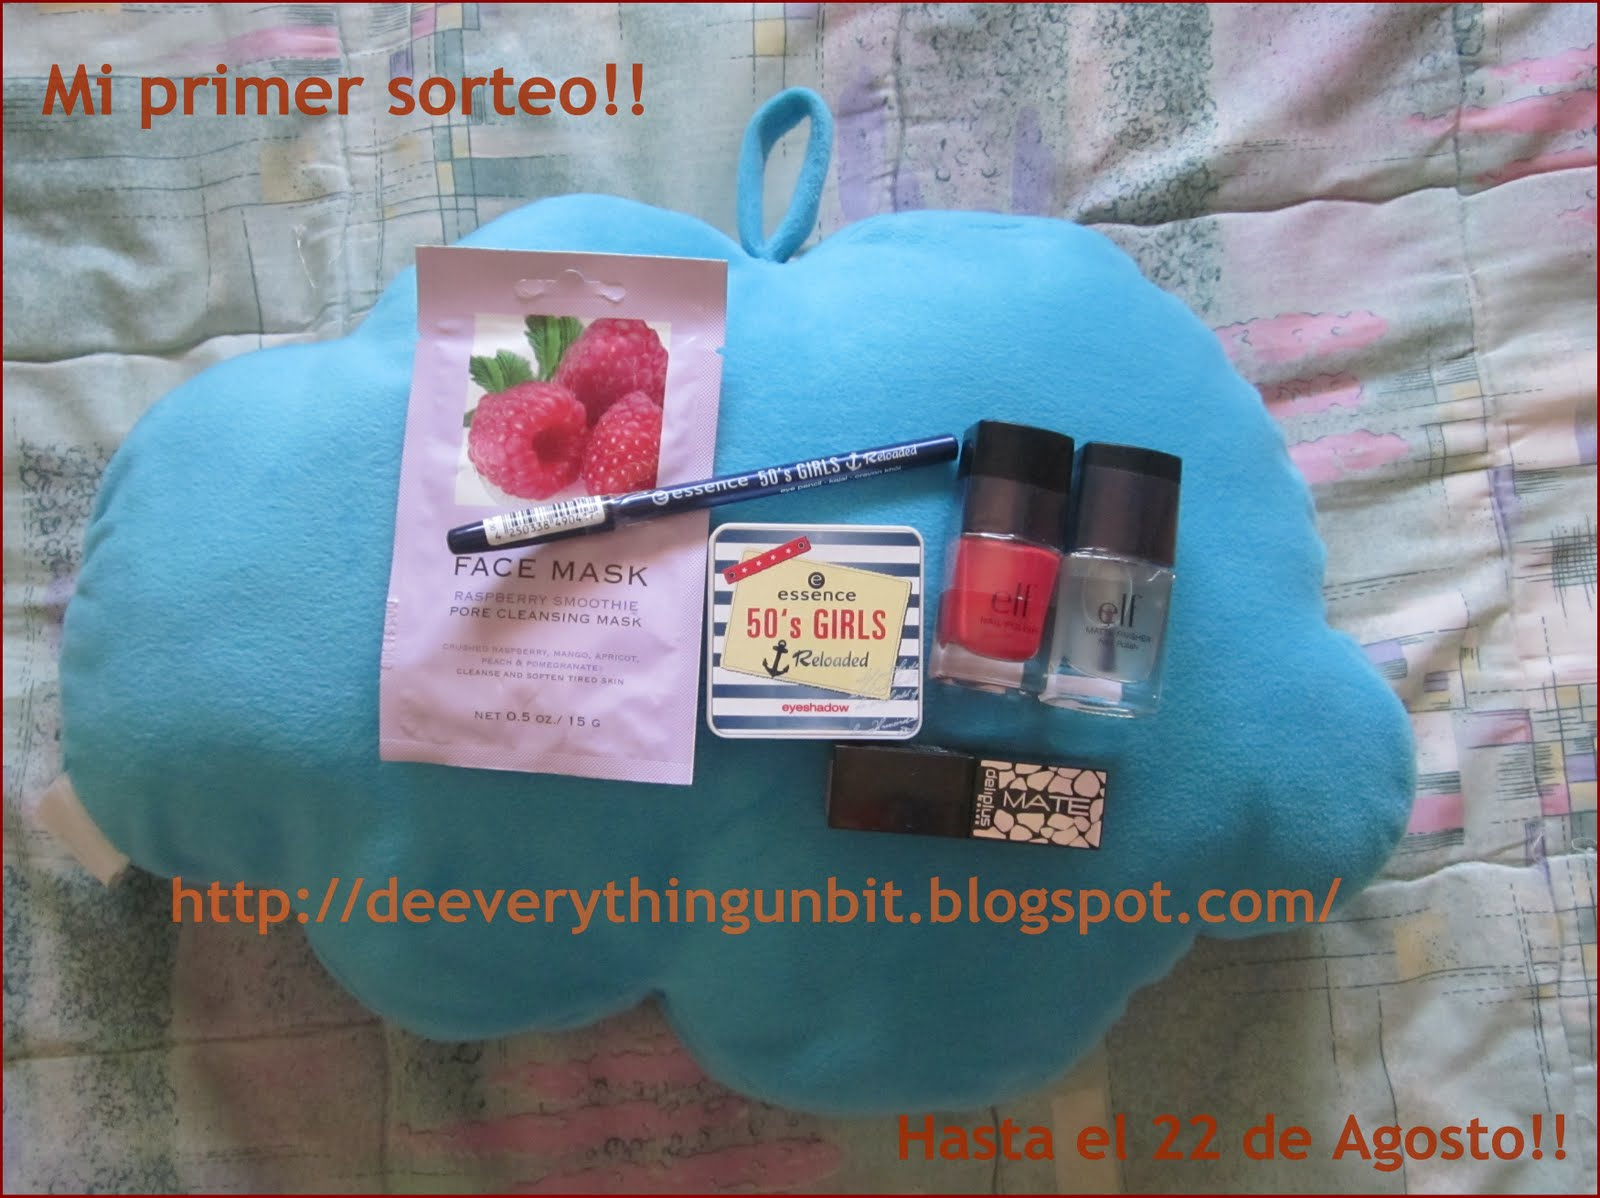 Sorteo everythigunbit: